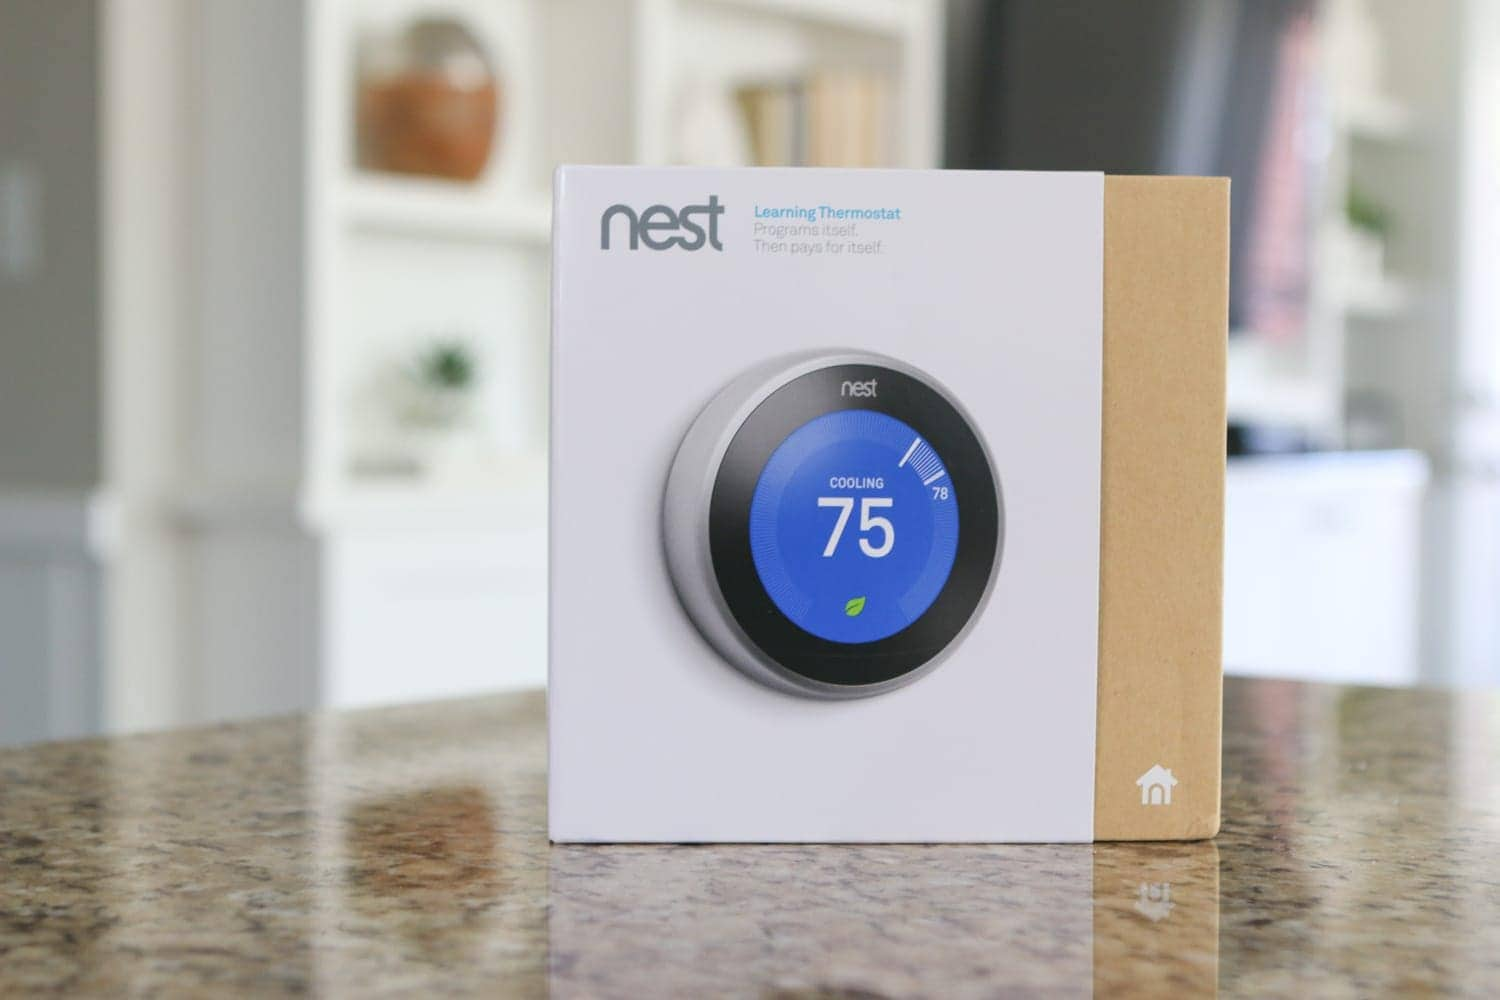 To-do project: Install the Nest